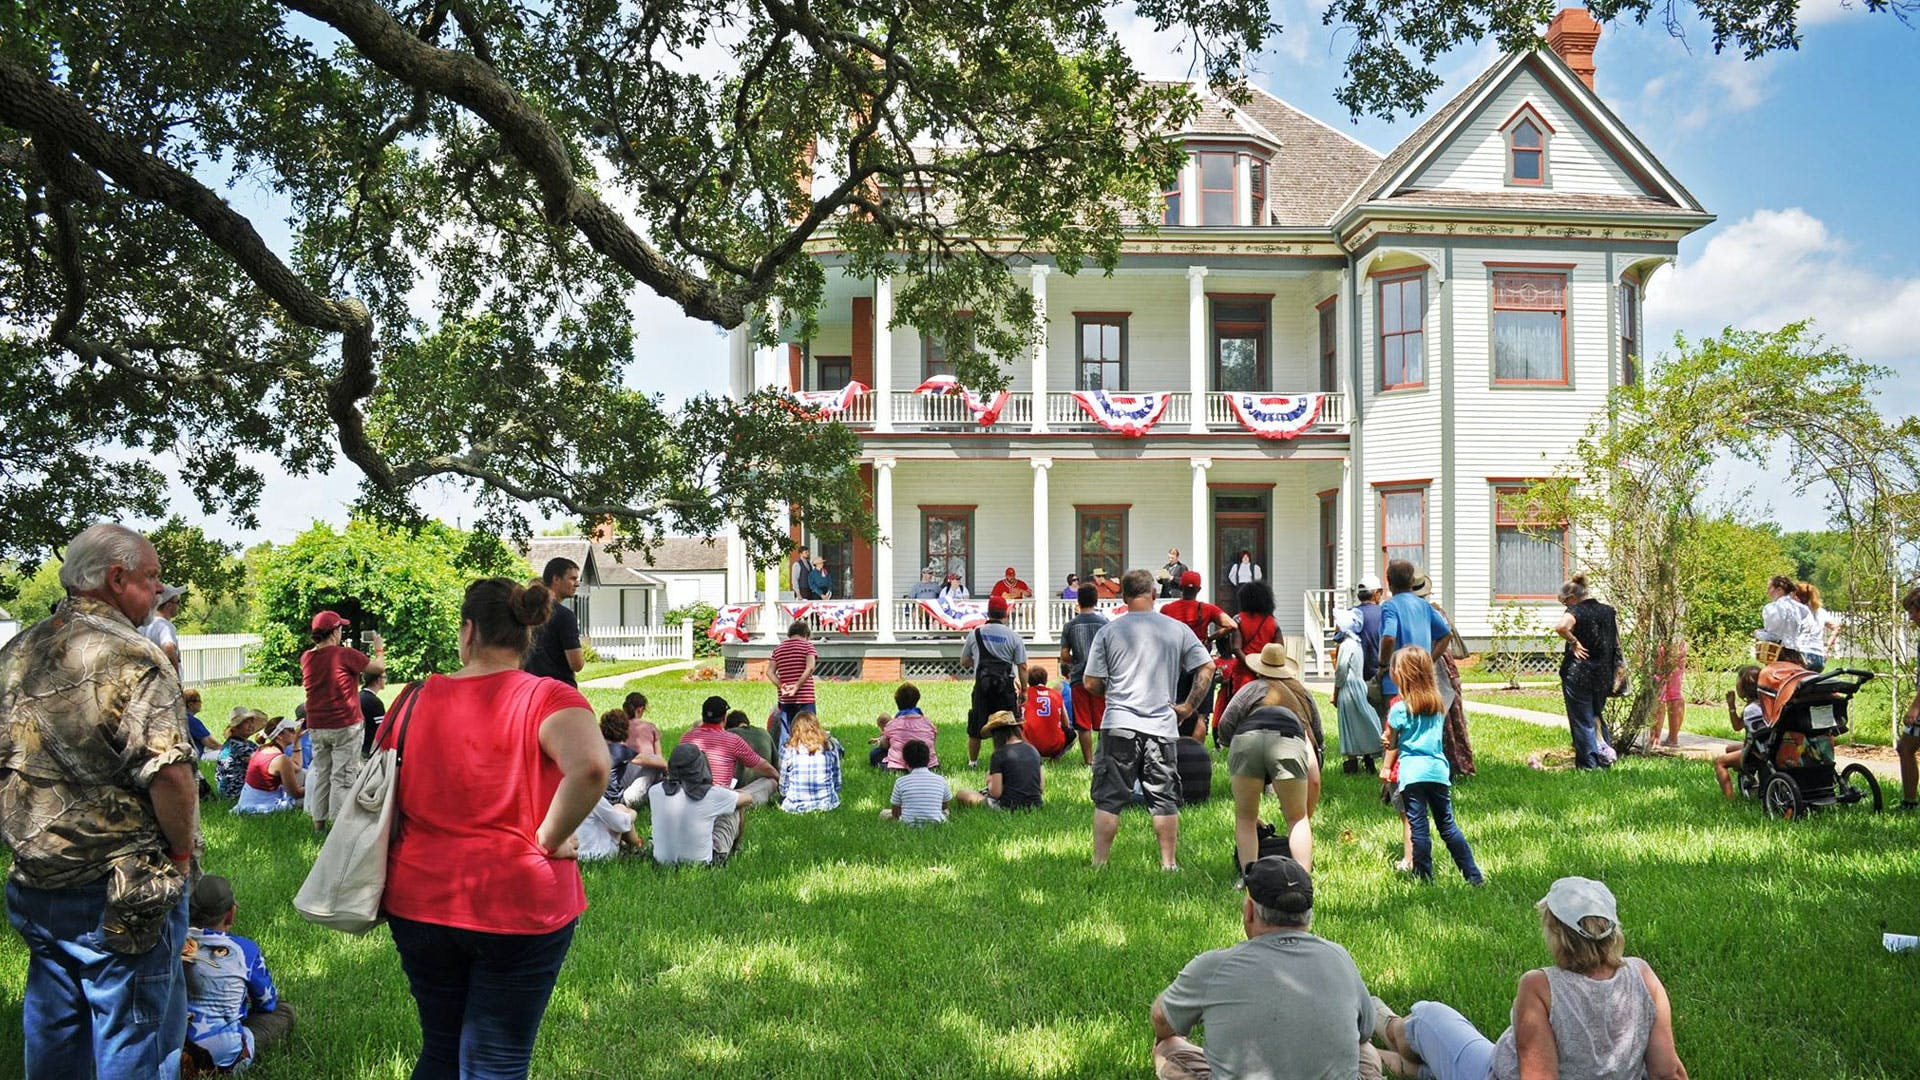 July-4-An-American-Tradition-George-Ranch-Historical-Park